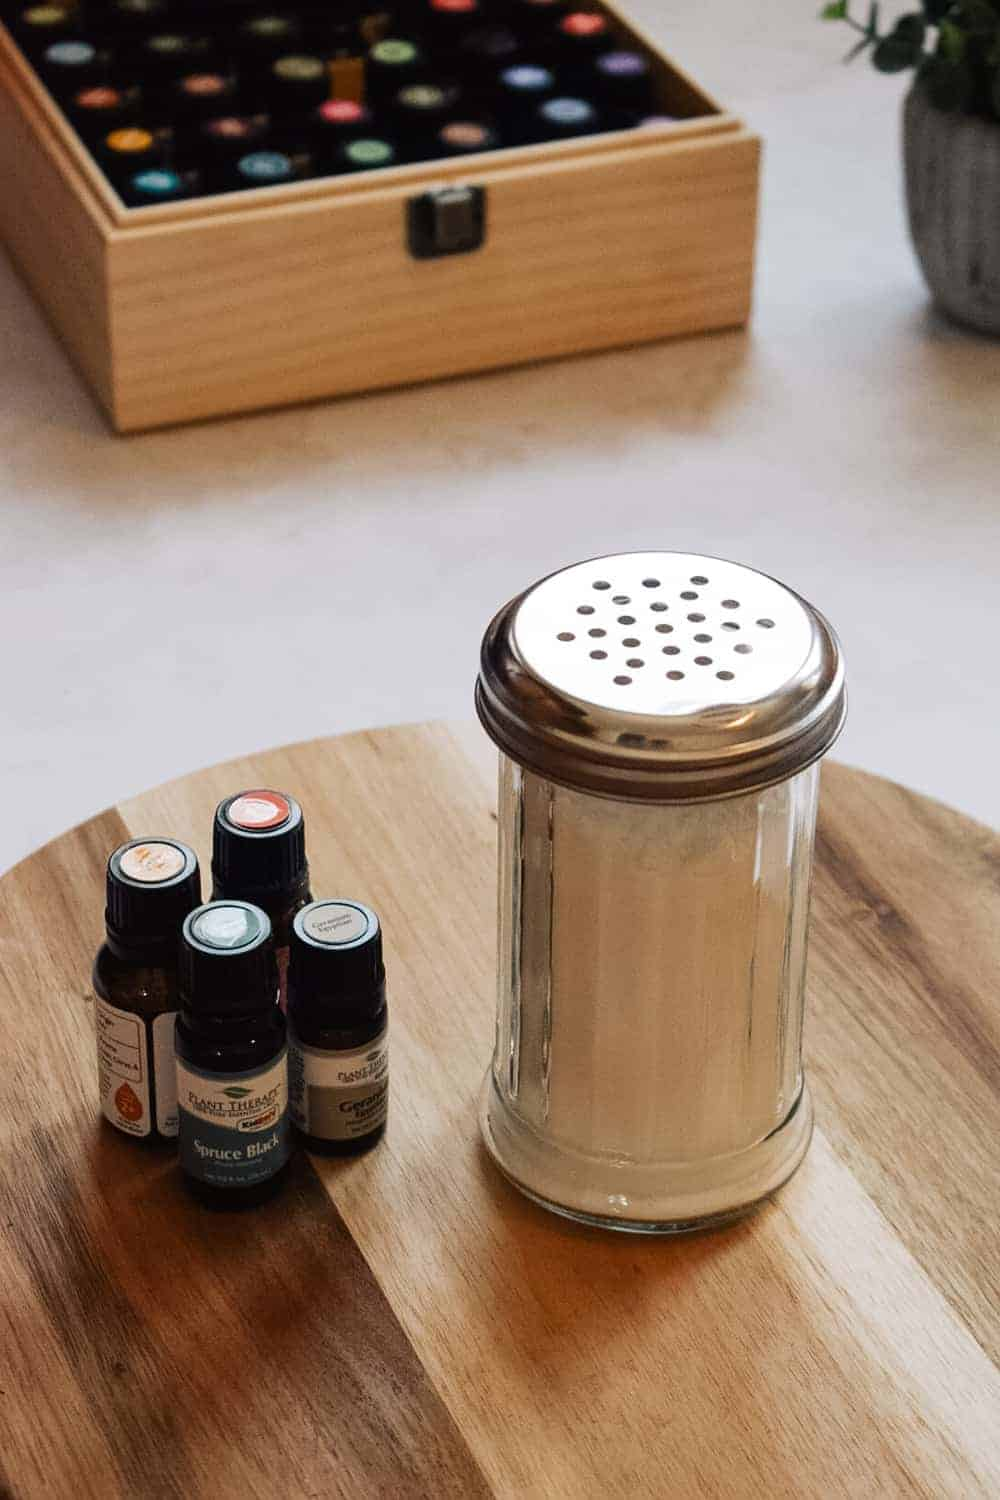 diy car freshener and essential oils on cutting board